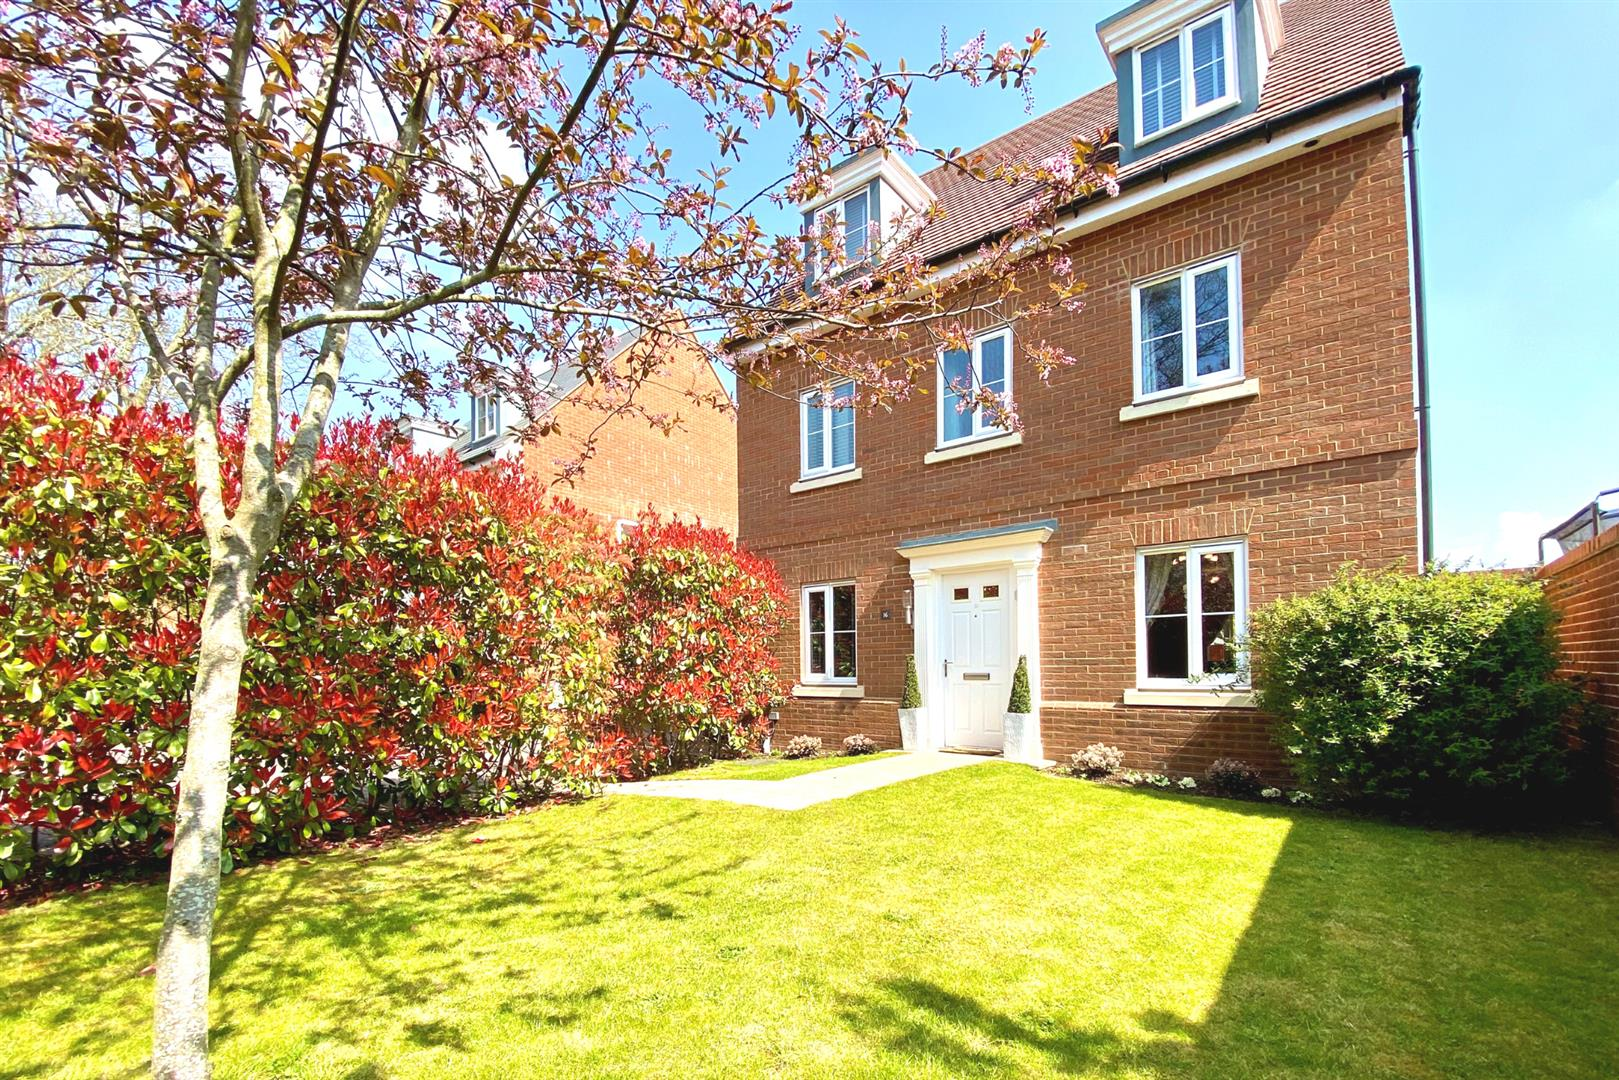 5 bed detached for sale in Three Mile Cross, RG7